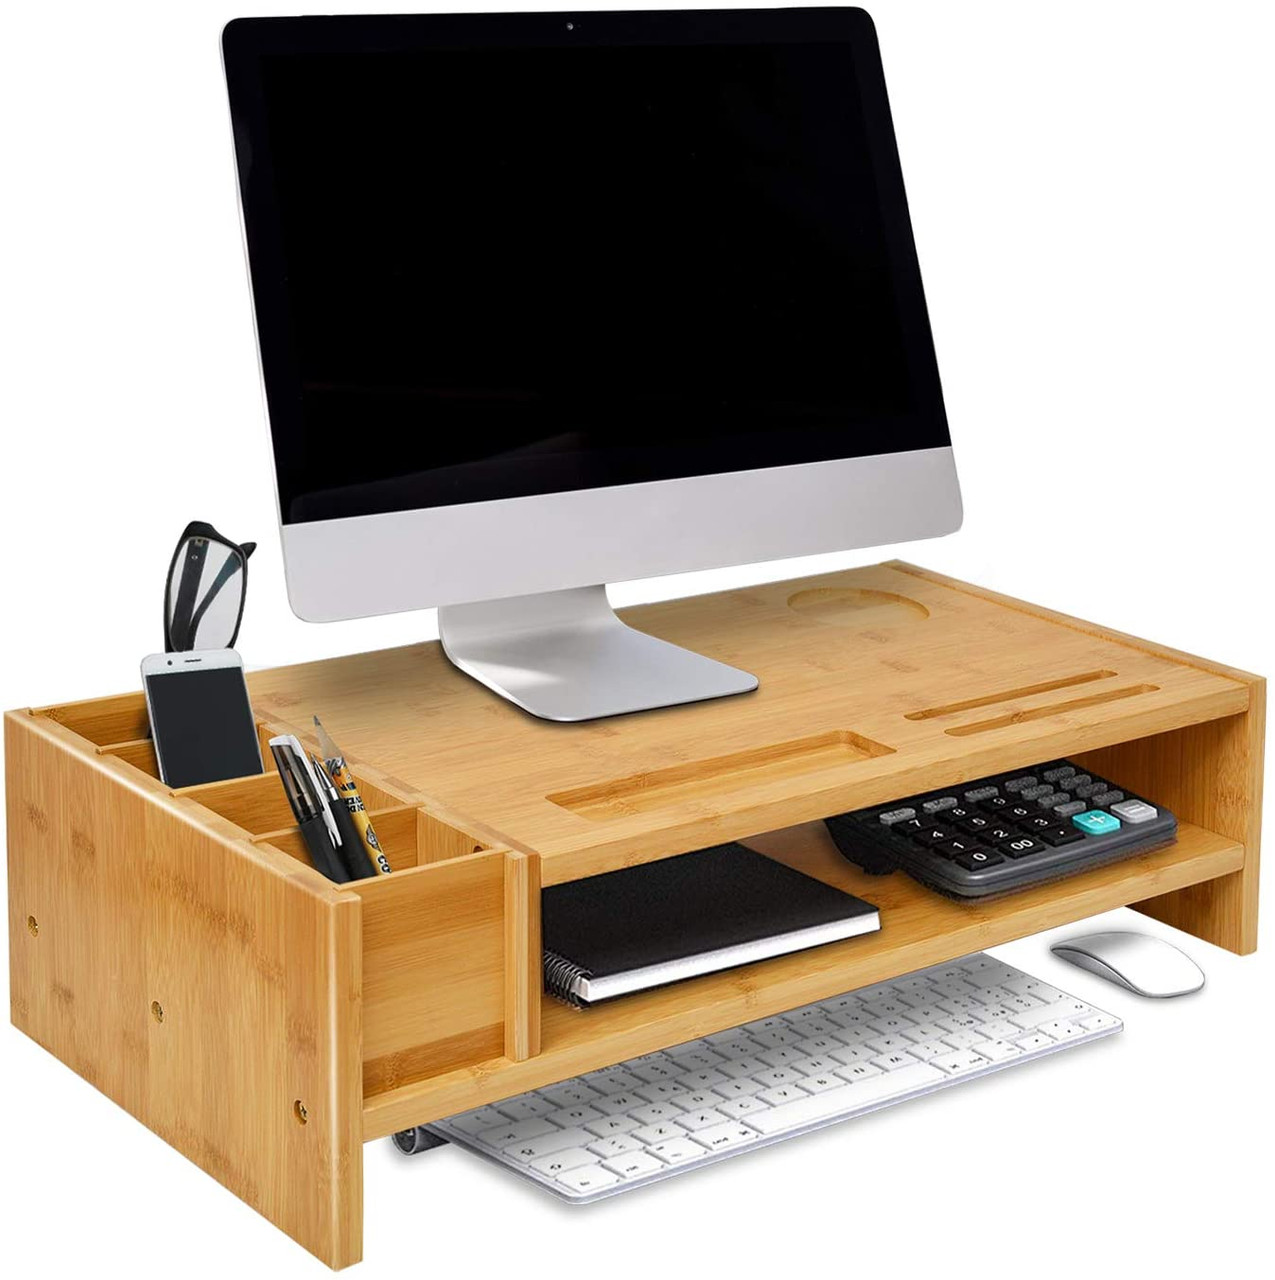 WAYTRIM 42-Tier Bamboo Monitor Stand, Wood Computer Monitor Riser, Wooden  Desk Organizers with Adjustable Storage Accessories Shelf for iMac, Laptop,